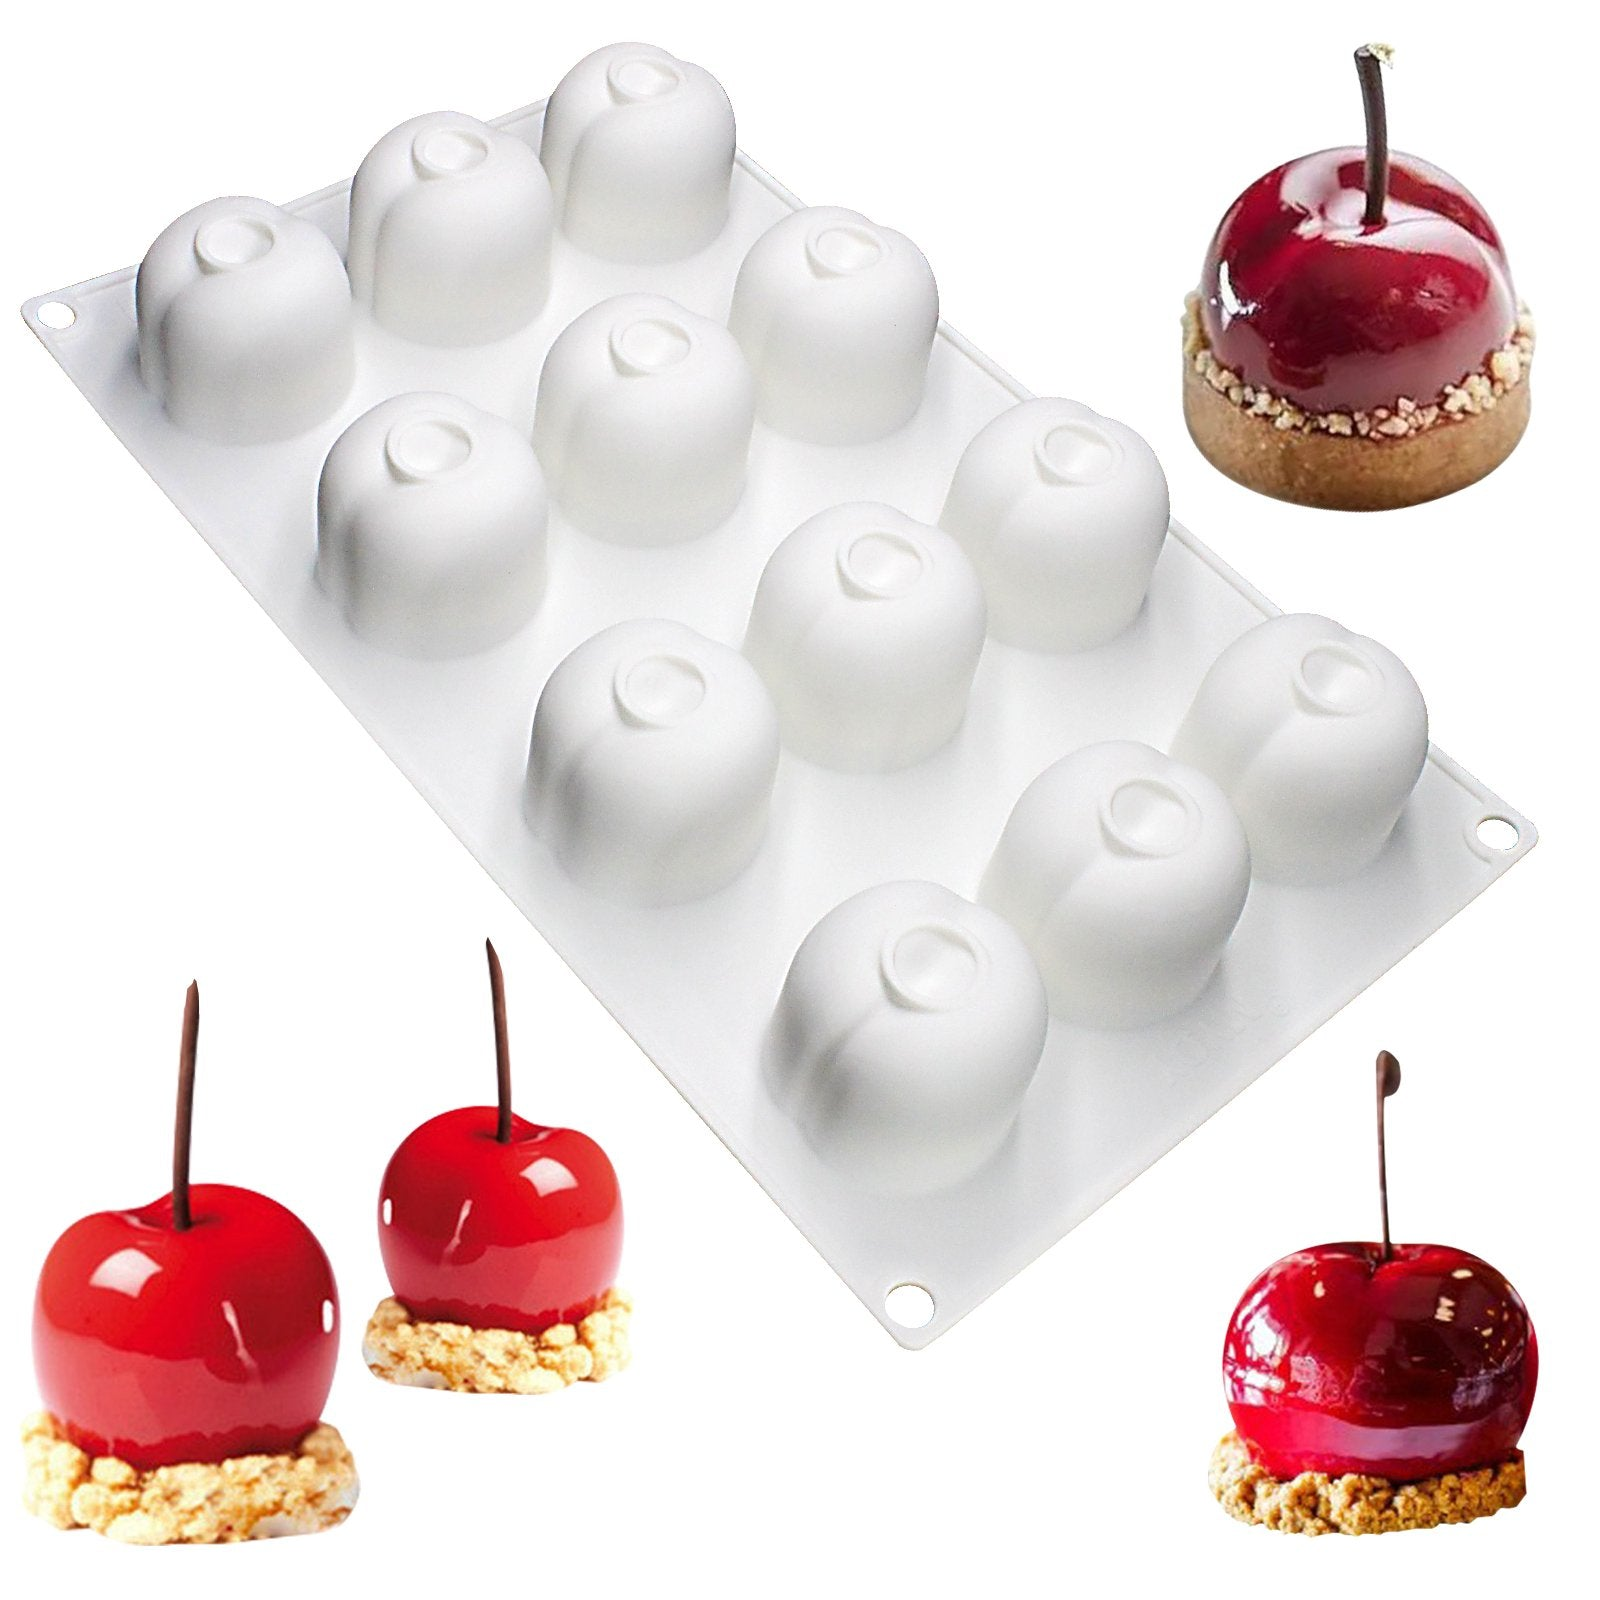 Glaze Cake Mousse Cherry Silicone Mold Tray 1.7x1.7x1.4inch